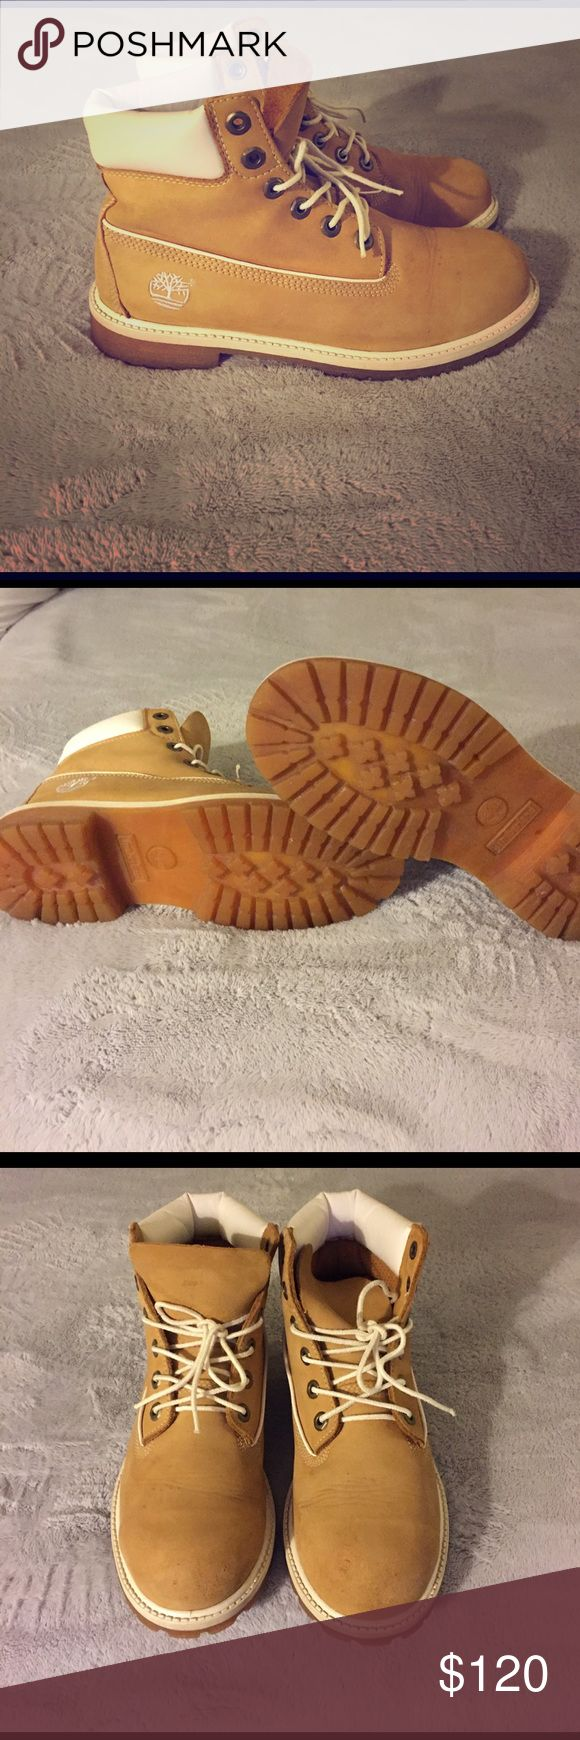 Timberland size (6 boys- 7-1/2 to 8 in women's) Tan original Timberland color with white accents. Fits size 7 1/2 to 8 in women's., lil scuffs but over great condition. Price negotiable...; ) Timberland Shoes Combat & Moto Boots